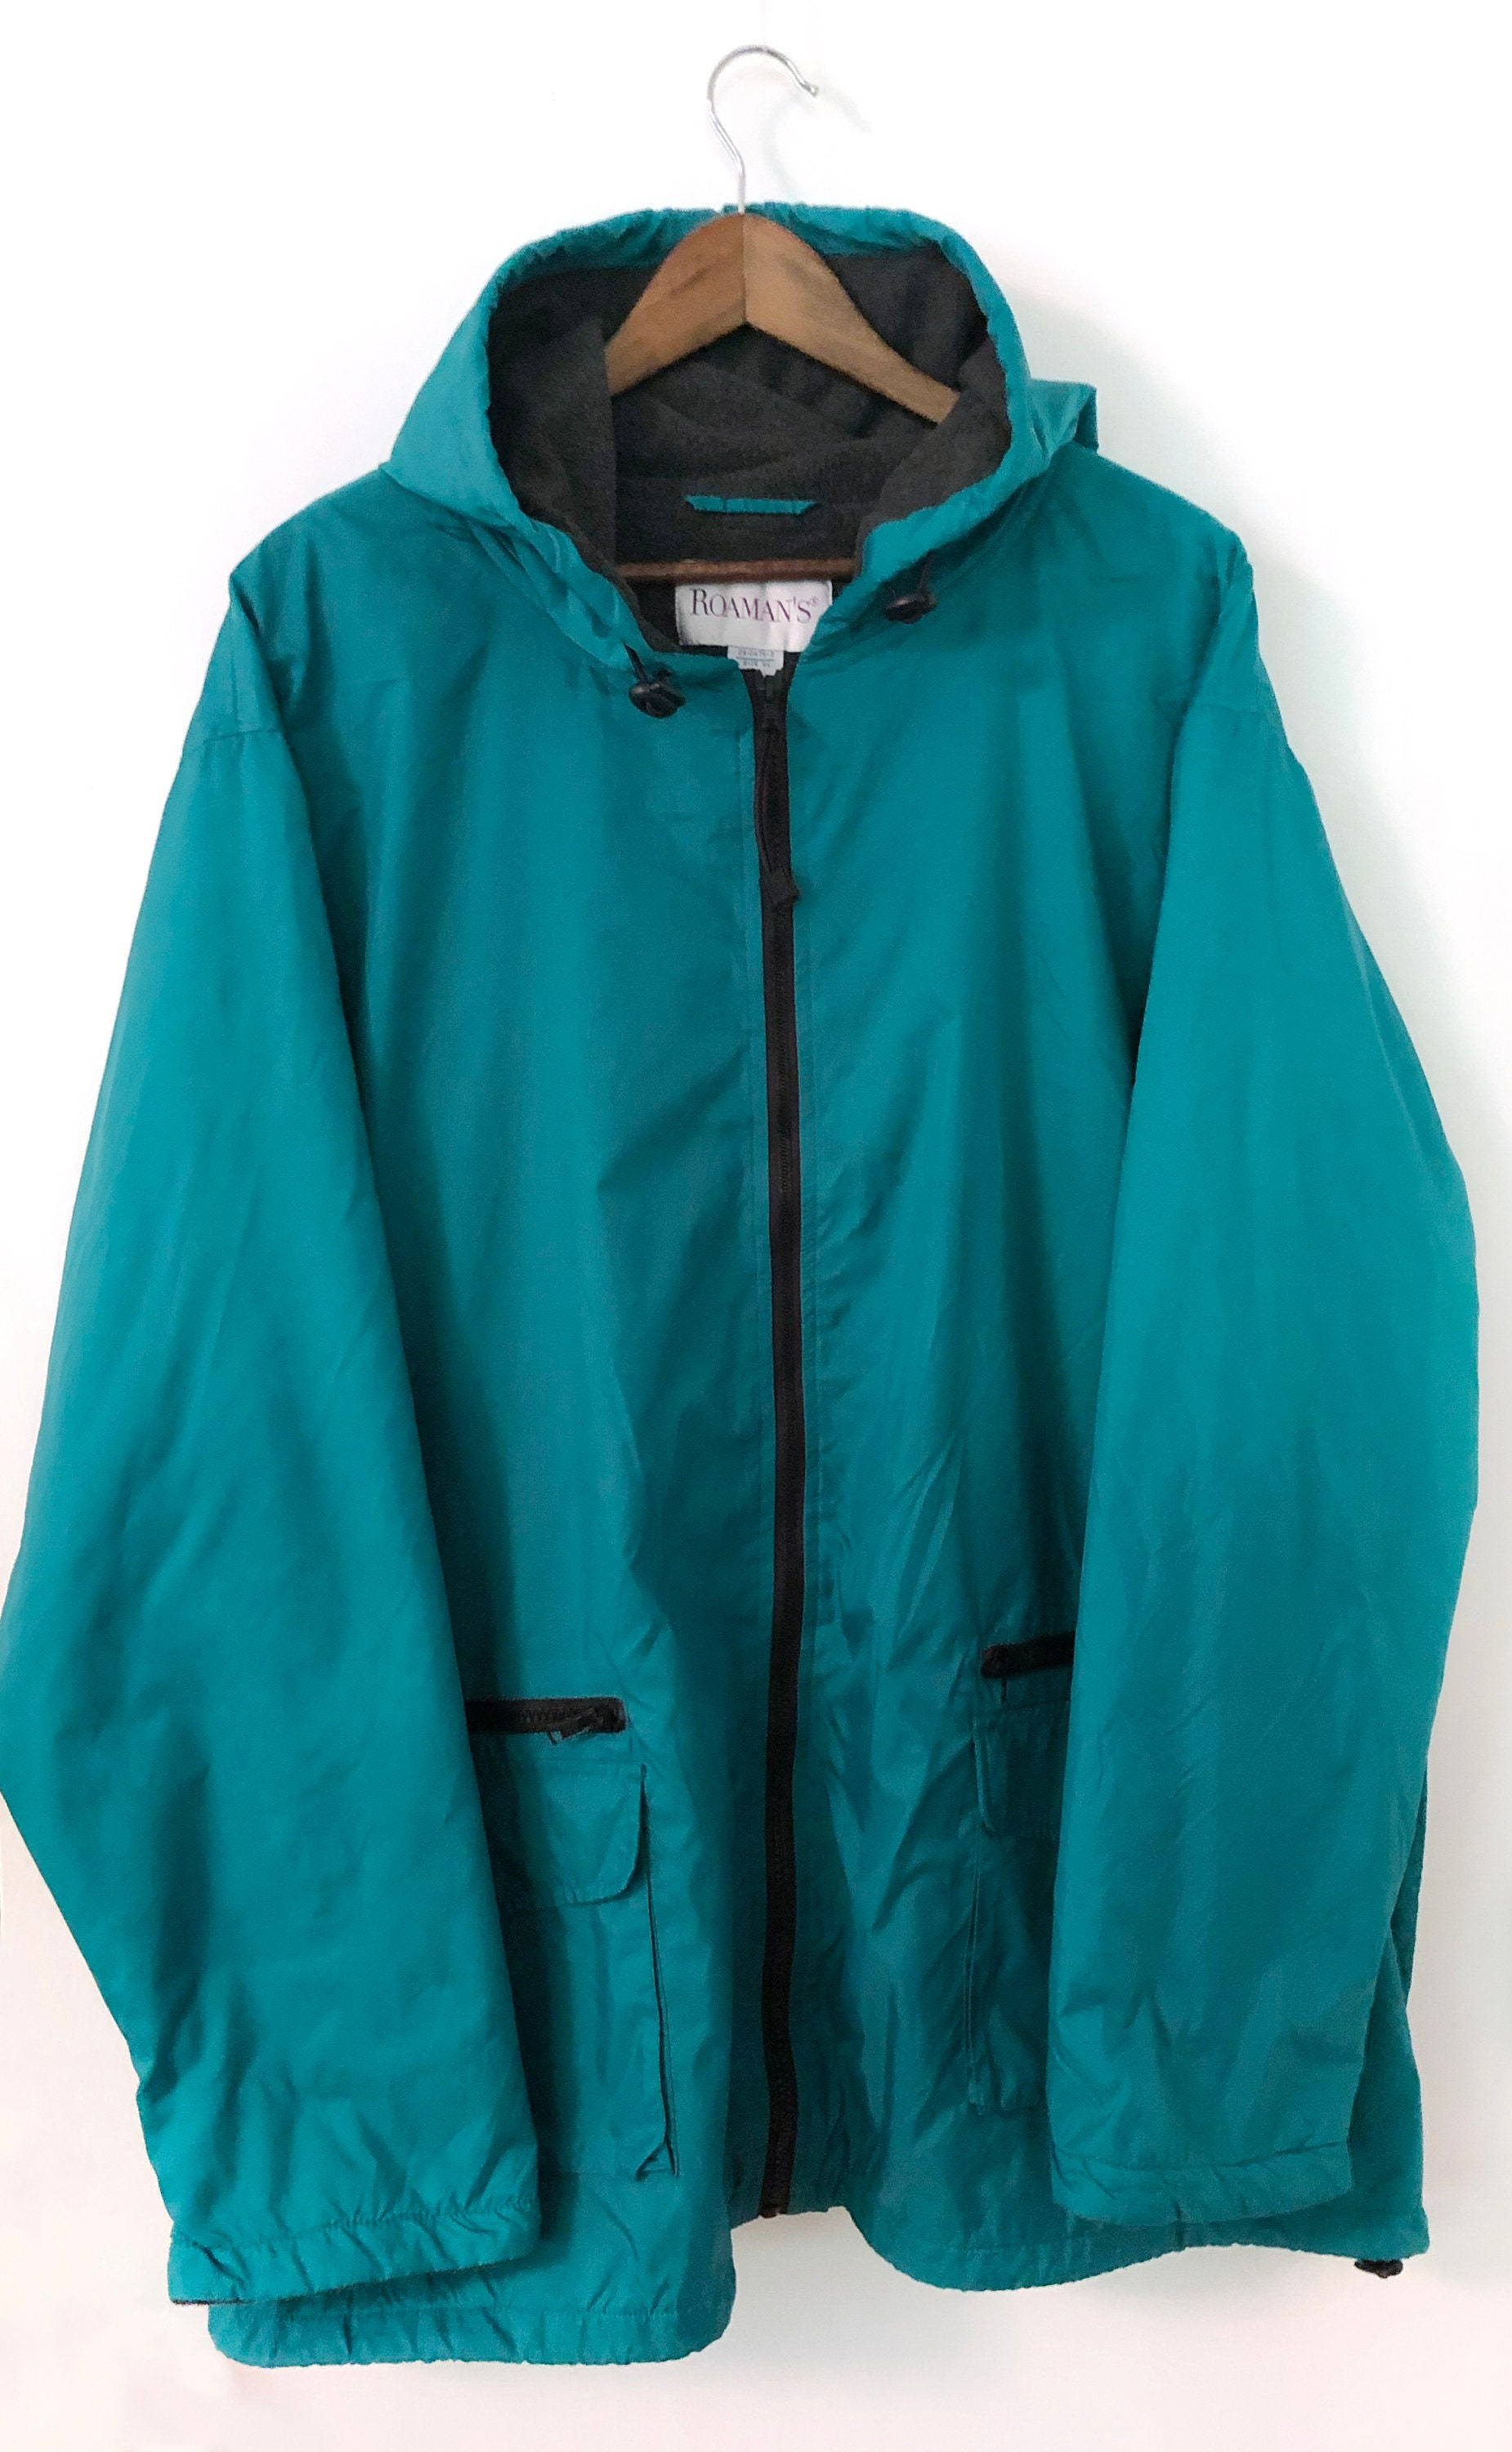 4e9a27dd71697 Vintage 90's Teal Turquoise Aqua Hooded Oversized Loose Baggy Full Zip  Polar Fleece Lined Nylon Windbreaker Jacket Patagonia REI Retro 3XL